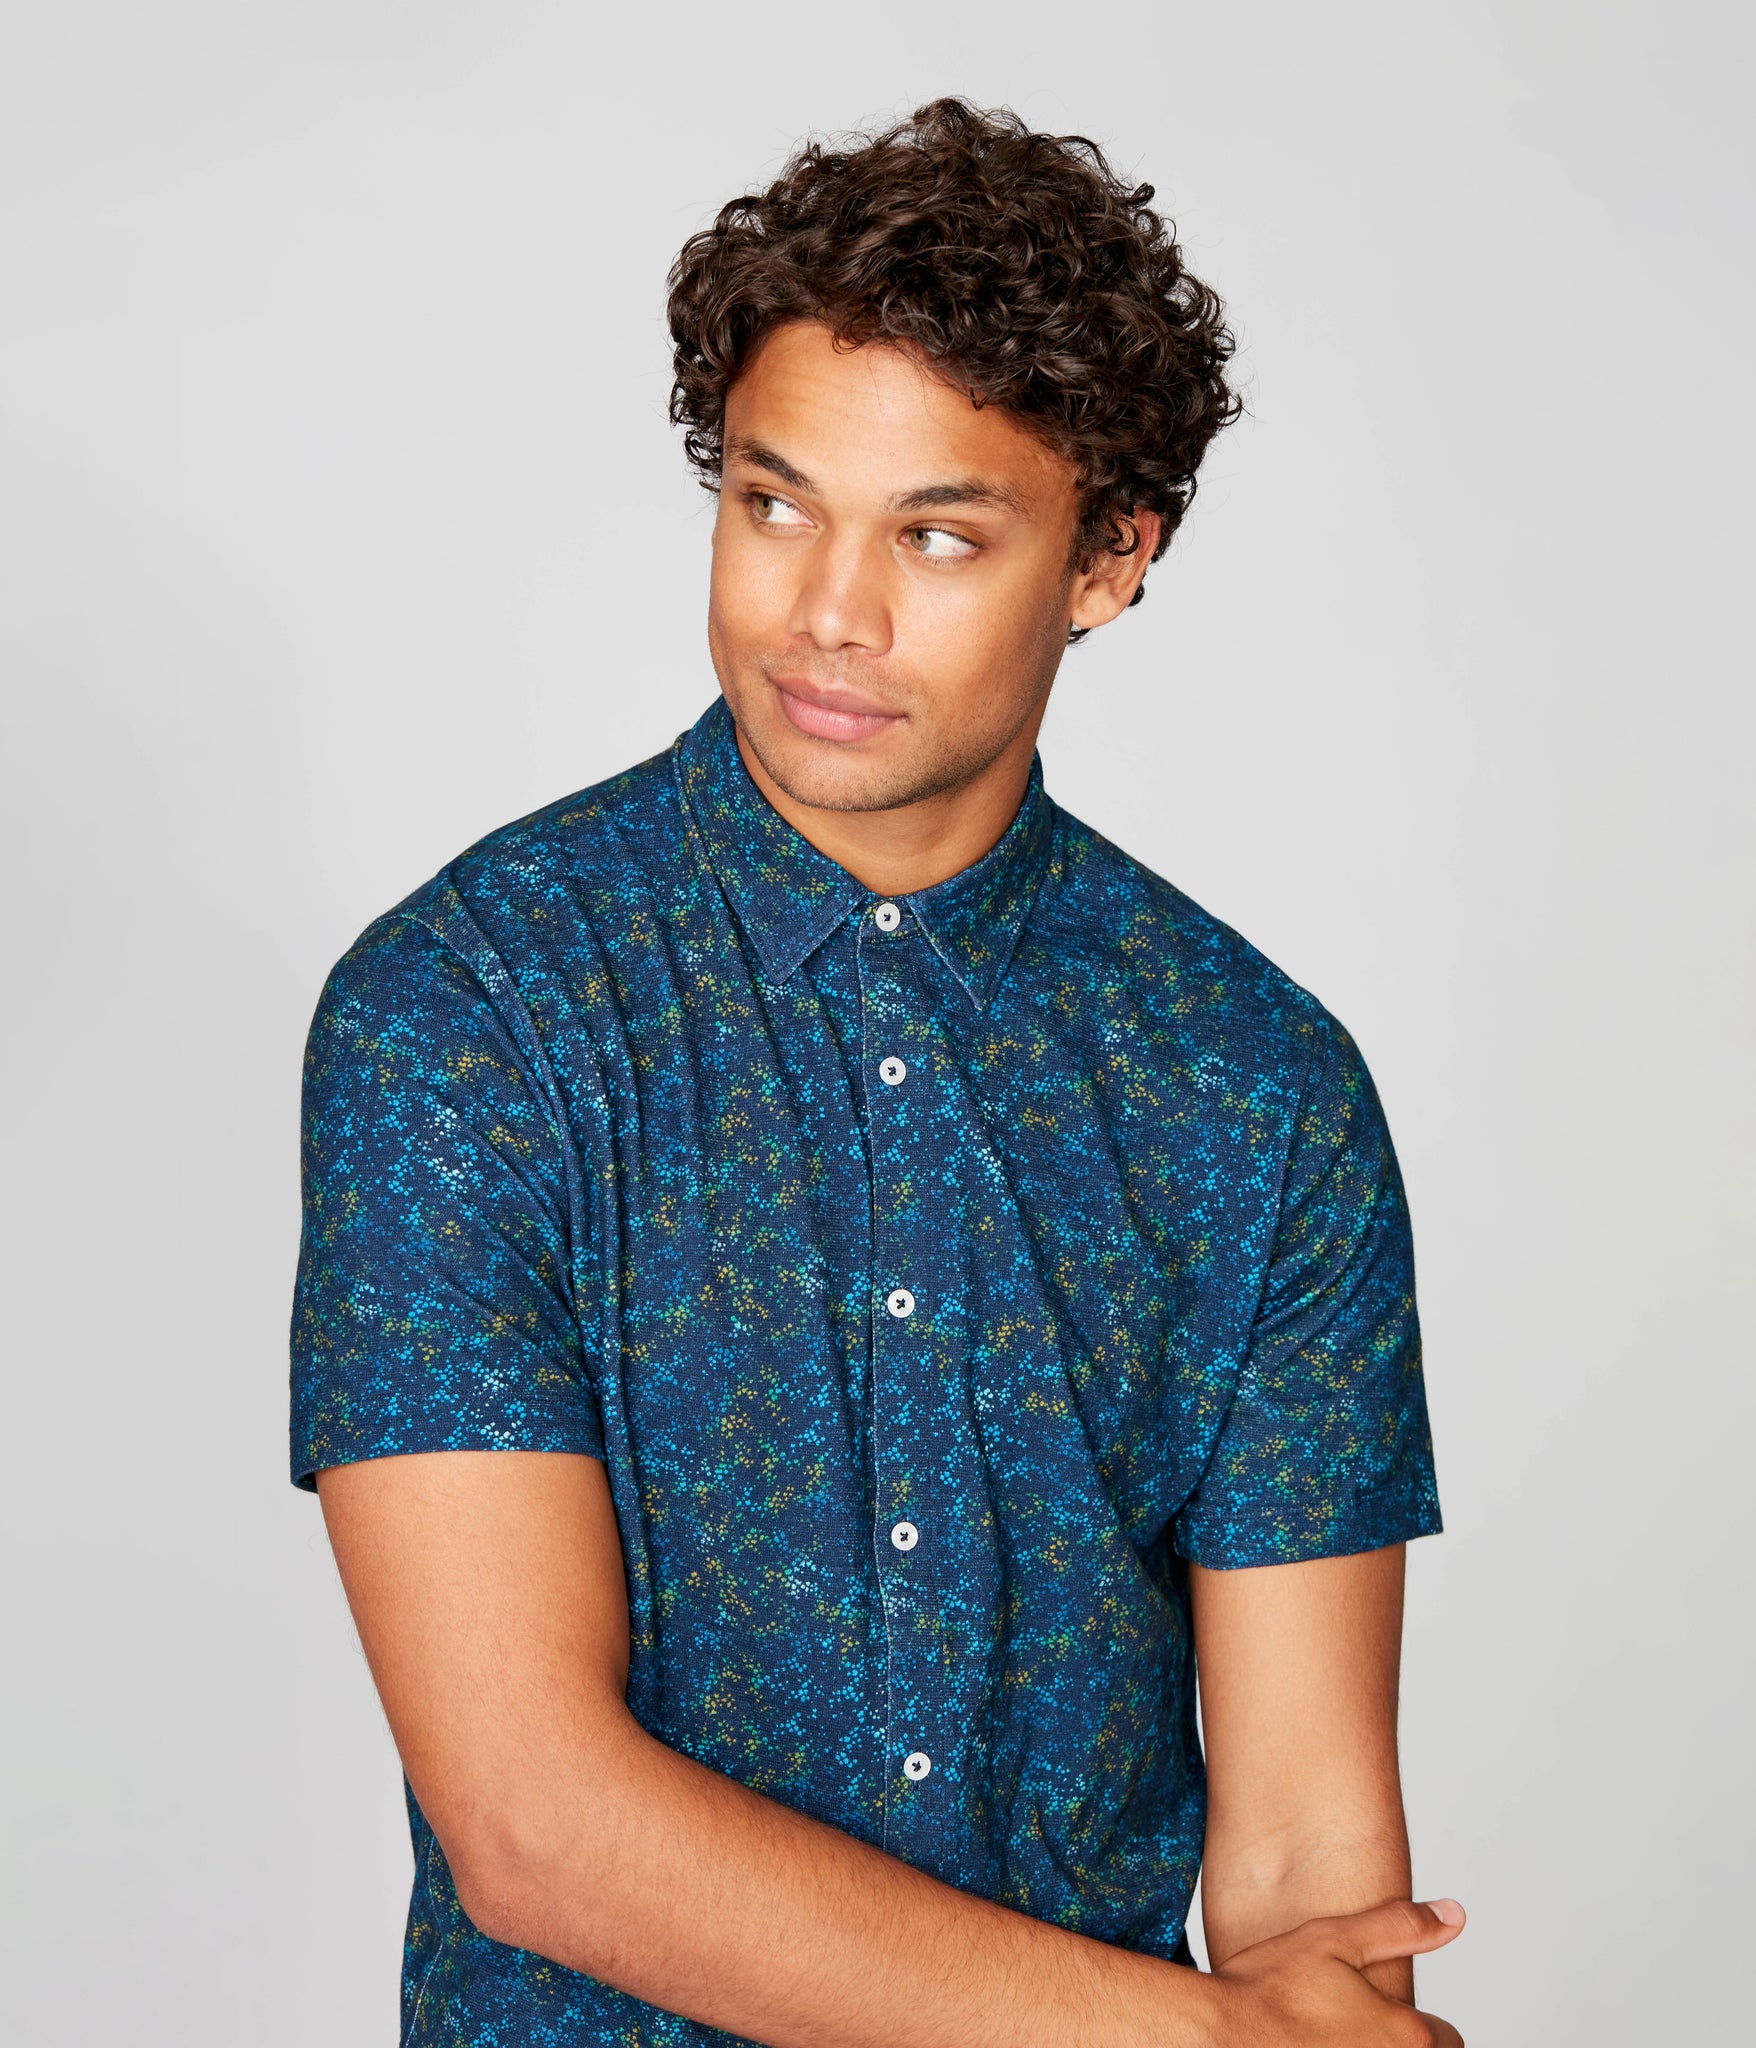 On-Point Soft Shirt in Soft Slub - Blue Pacific Stone Garden